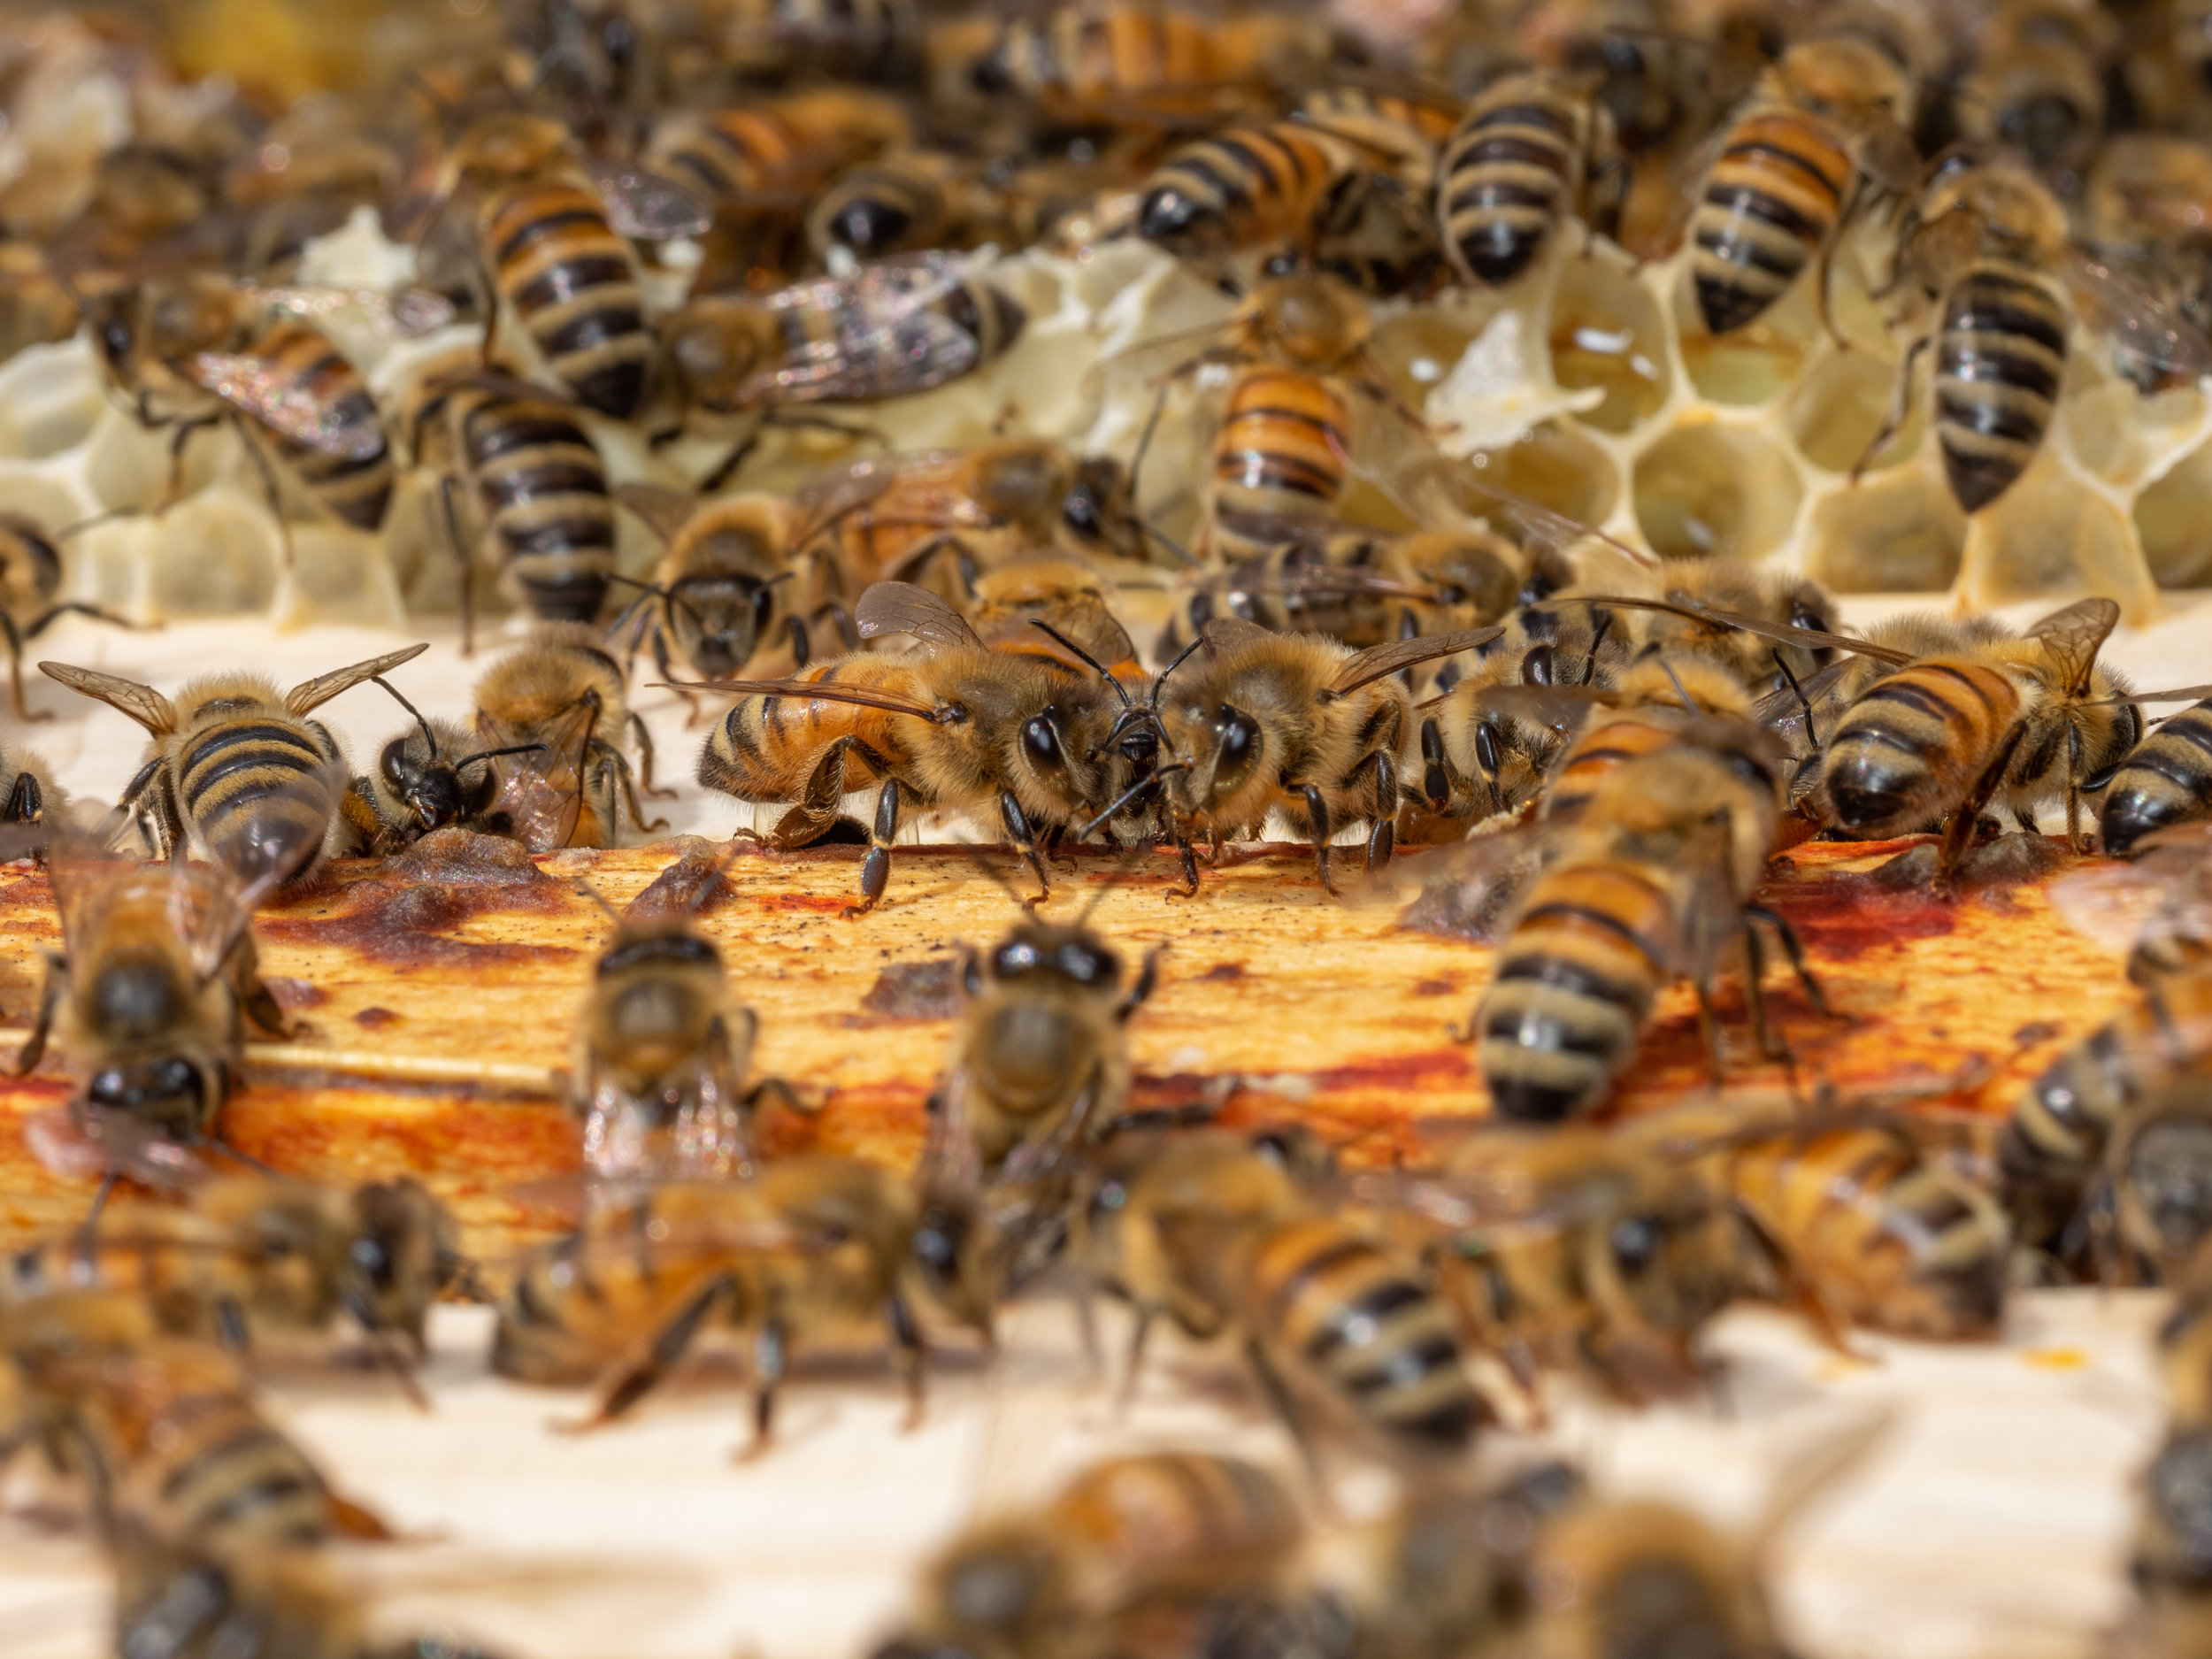 Integrated Pest Management: A Strategy for Better Beekeeping - by Bee & Bloom